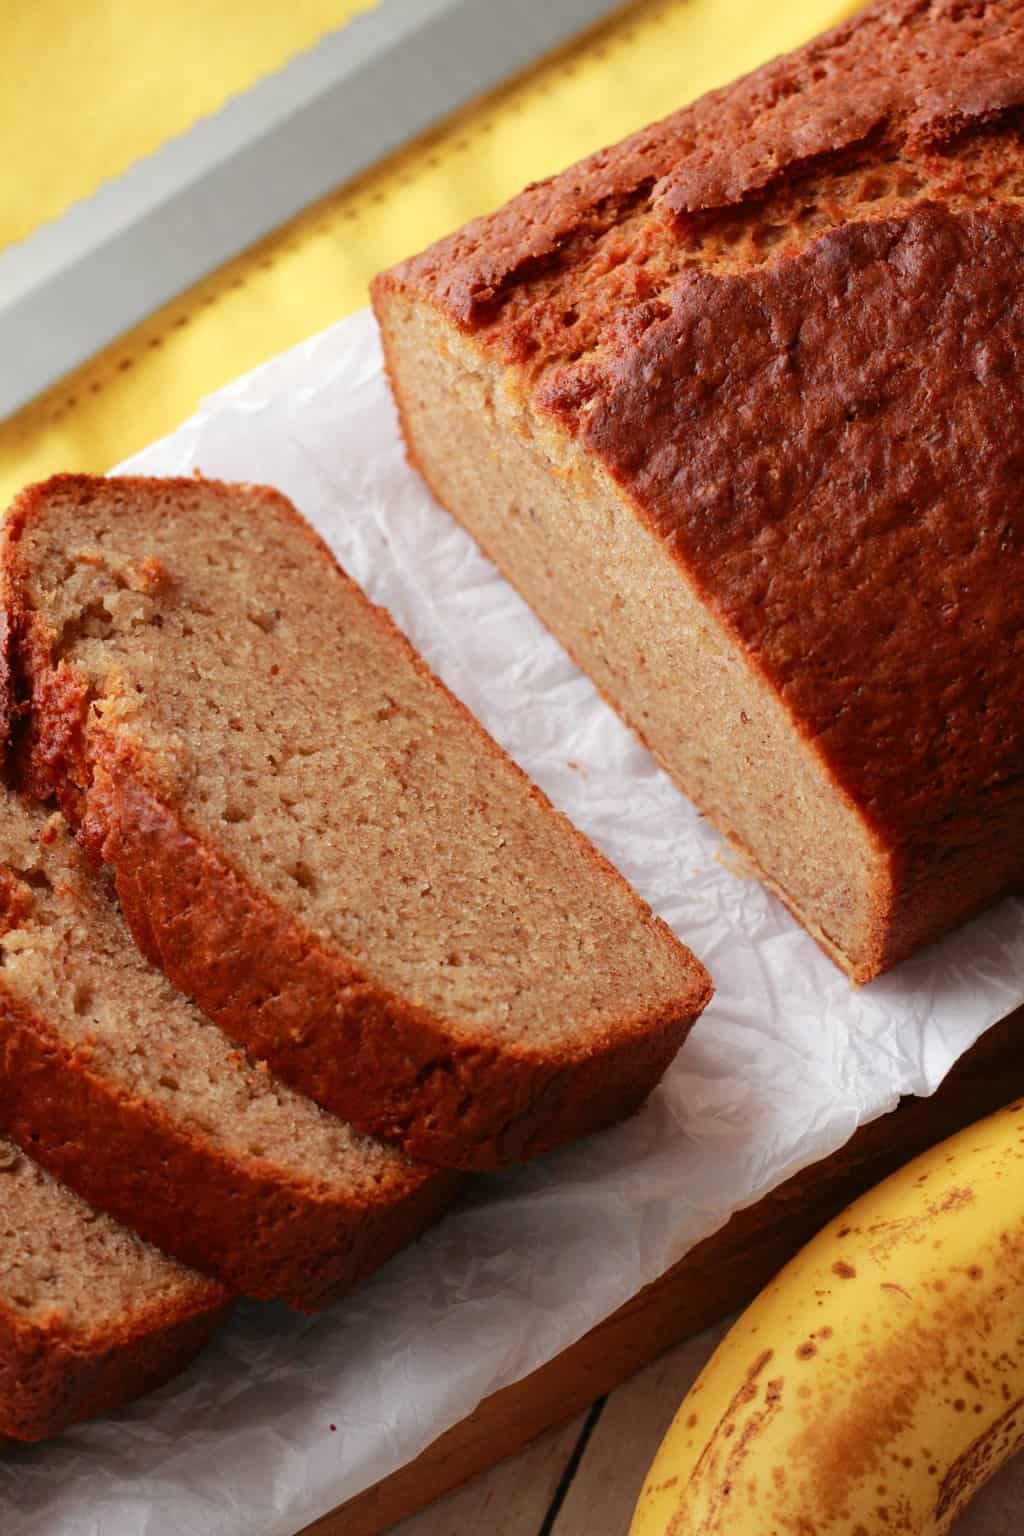 Sliced Vegan Banana Bread on parchment paper, a banana in the foreground.